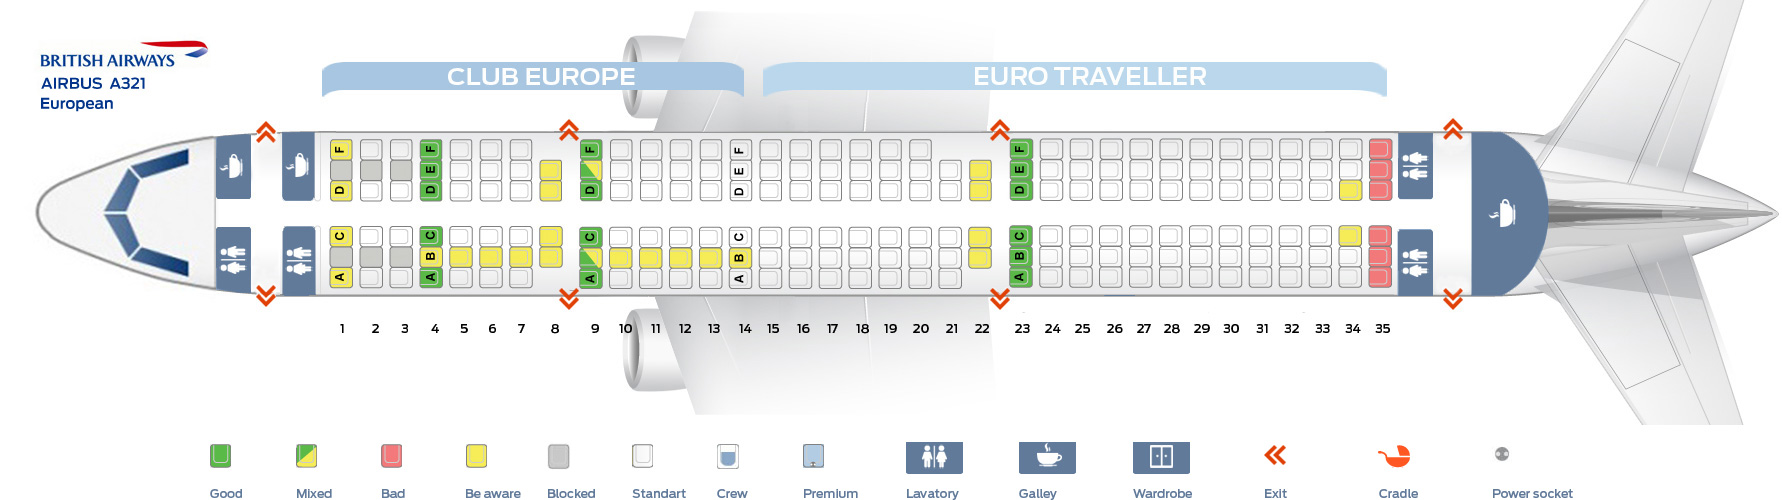 Seat Map And Seating Chart Airbus A321 200 European British Airways